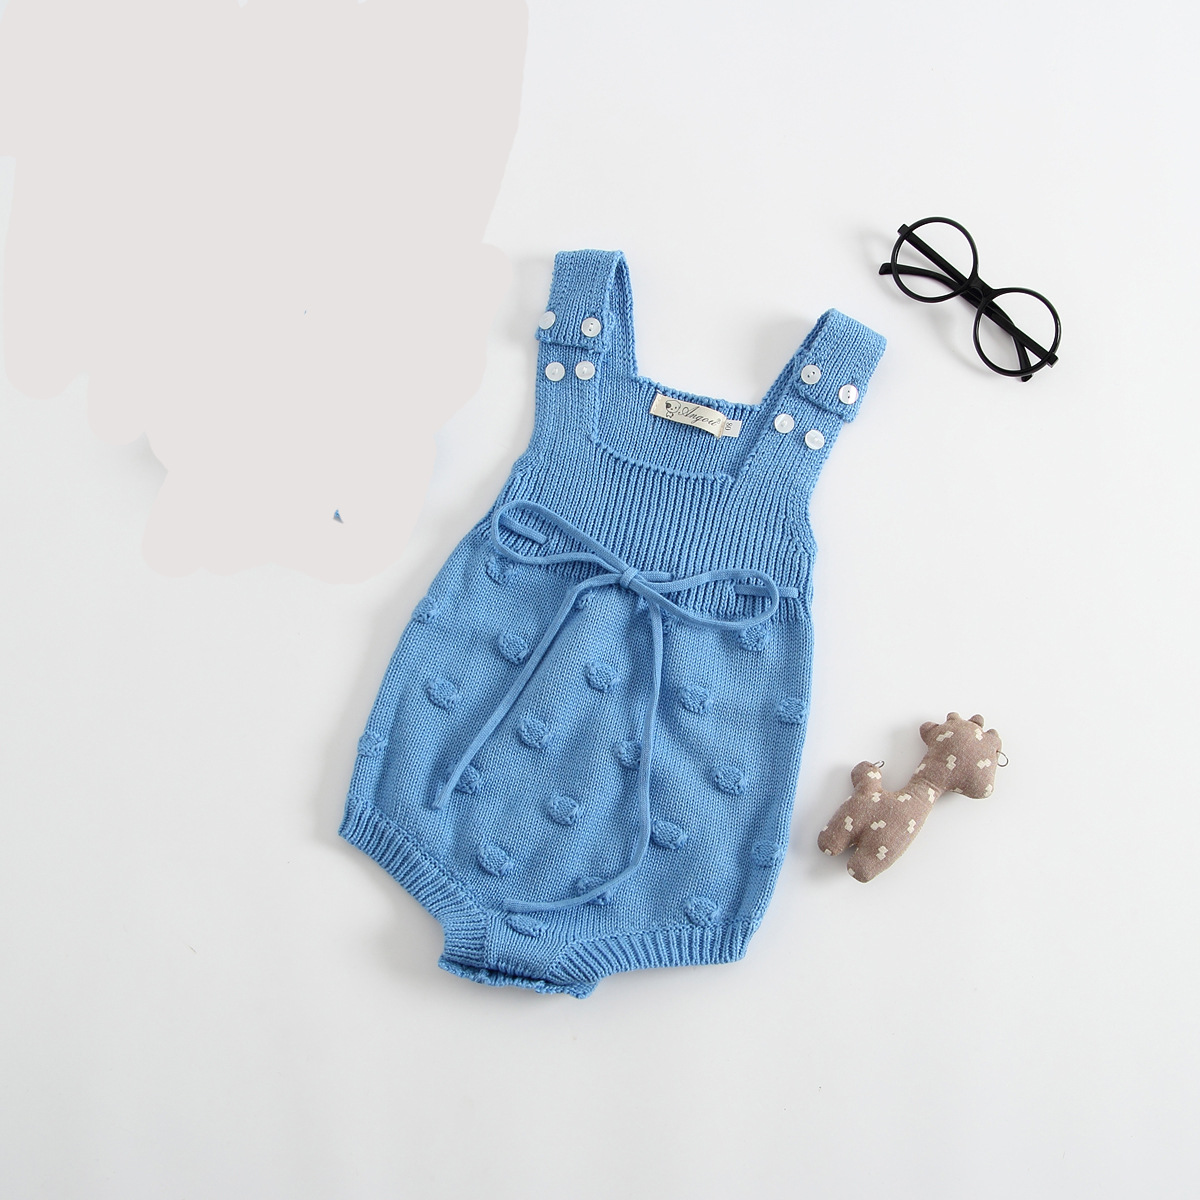 e220a145a1c Baby knitted Bubbles Rompers Newborn Kid Baby Girls Wool Knitting Romper  Sleeveless Autumn Jumpsuit Outfit Set Baby Clothes